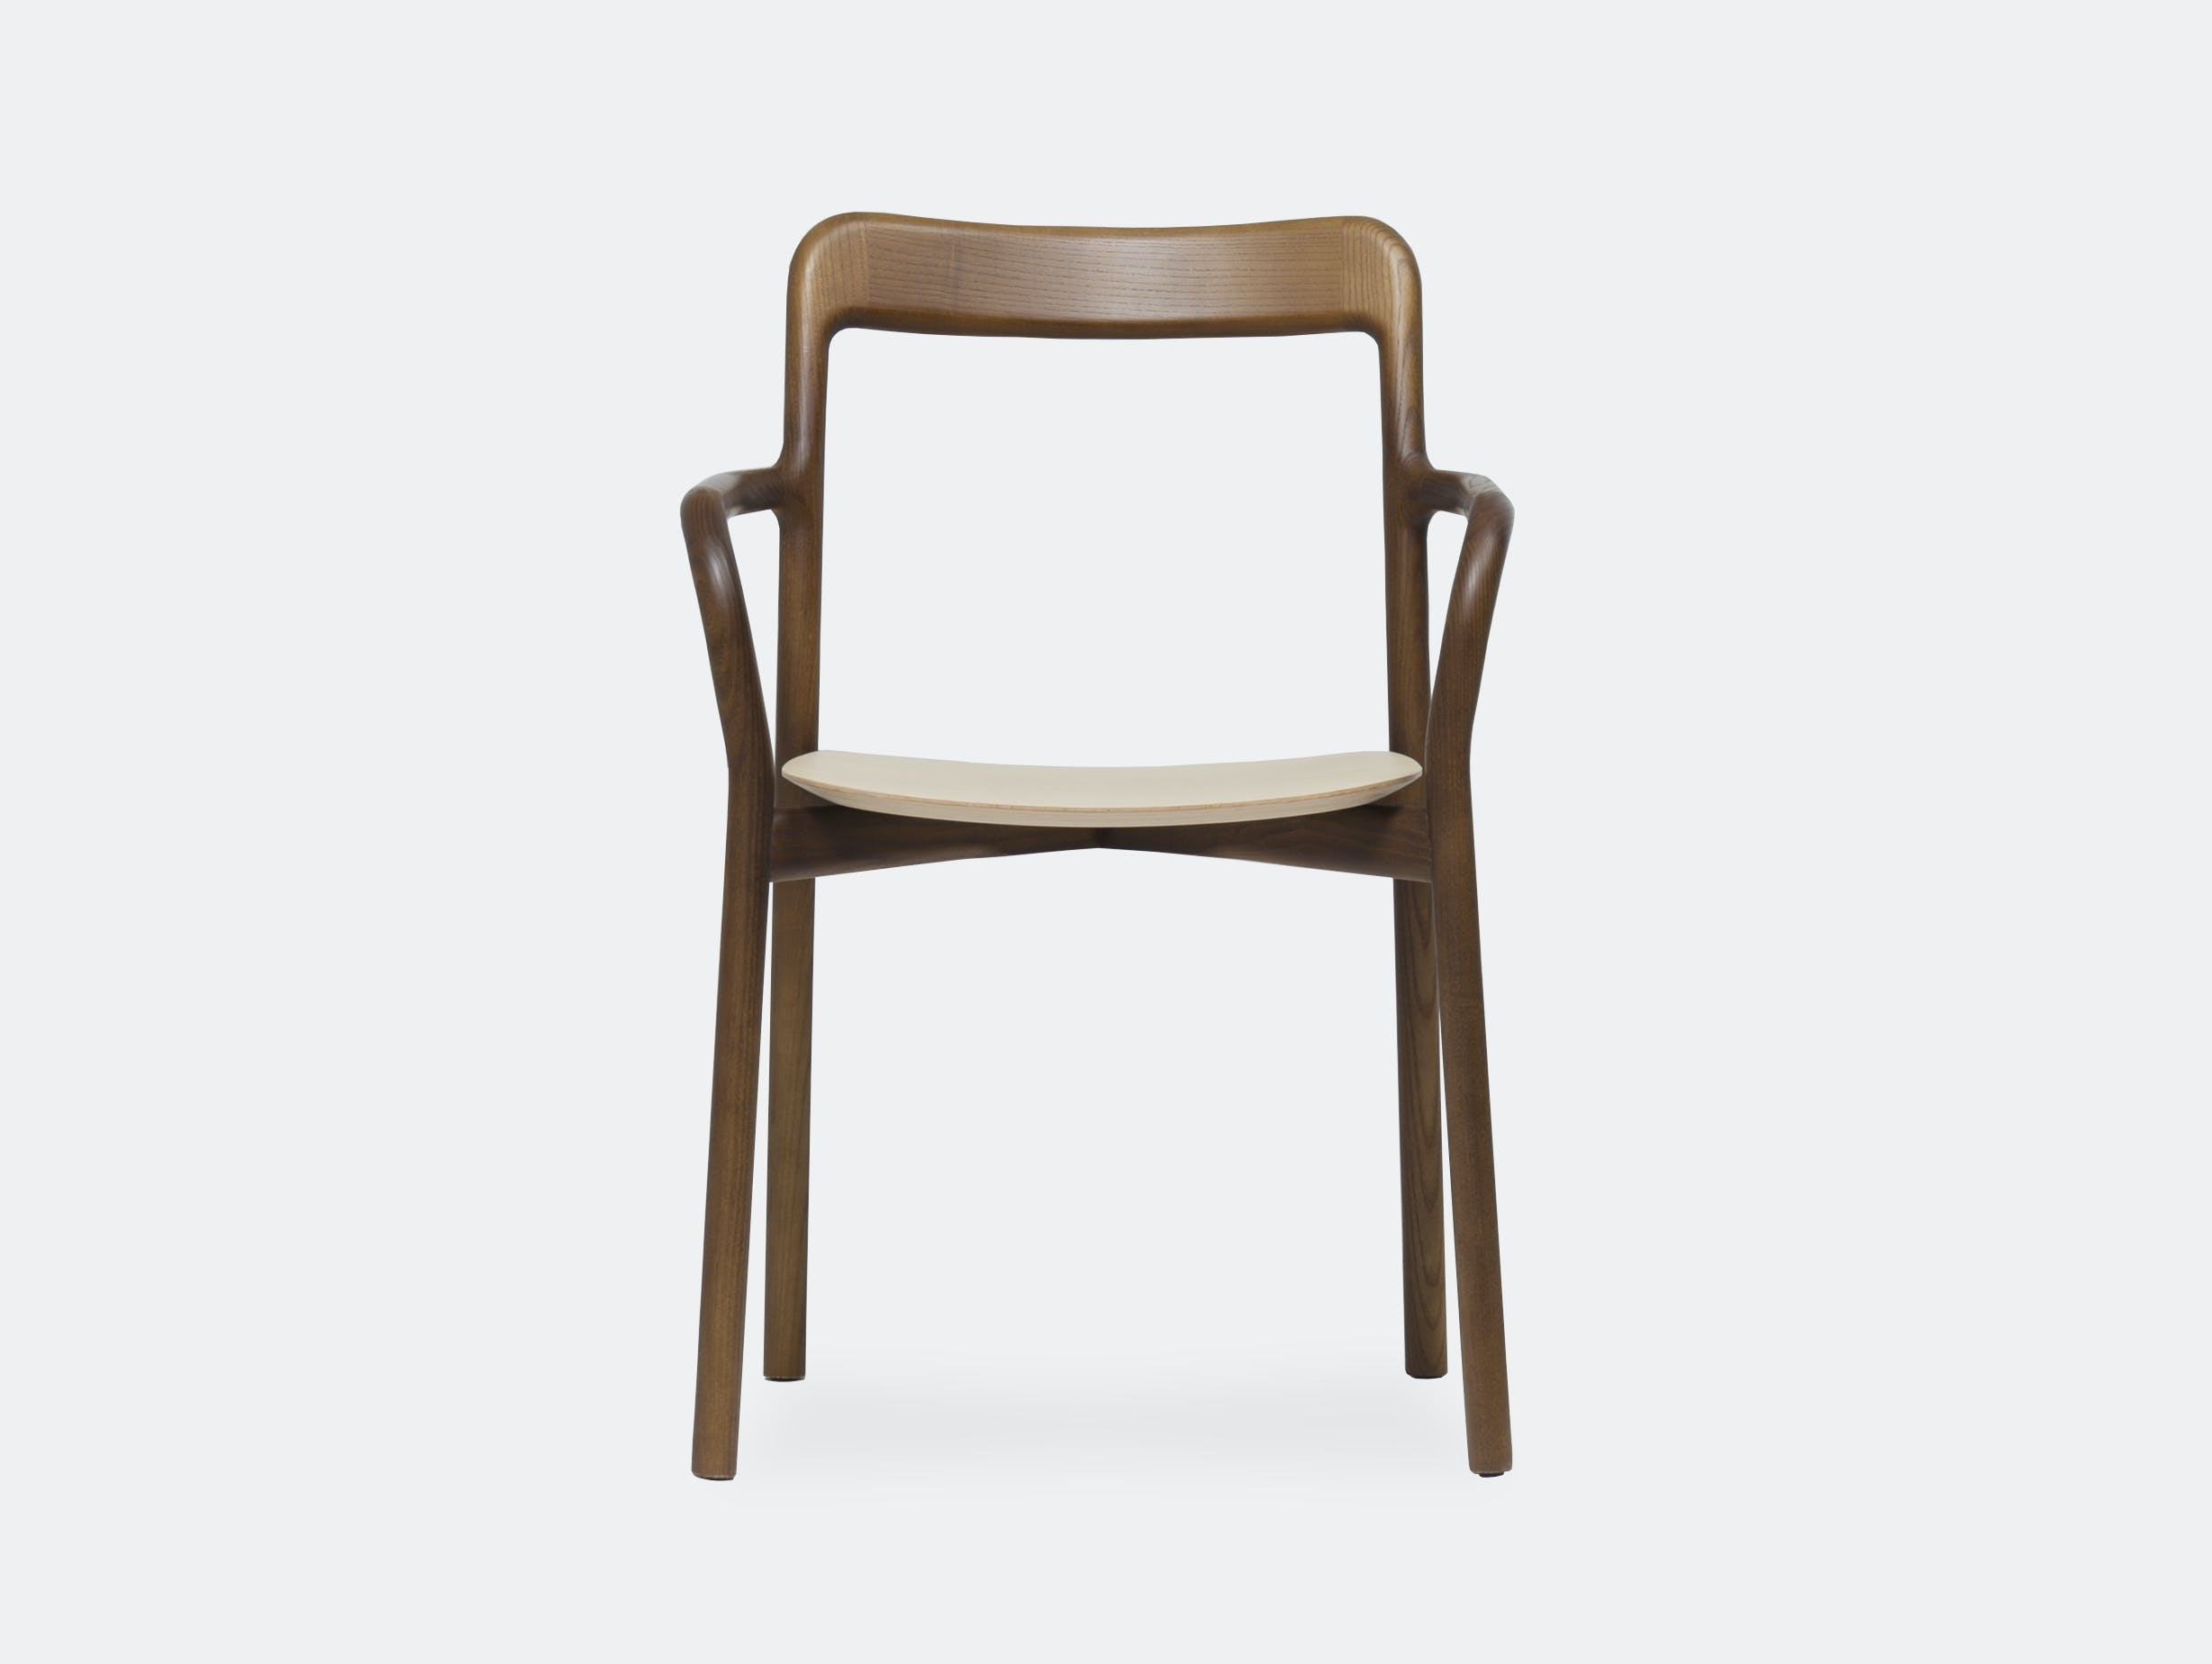 Mattiazzi Branca Chair brown Sam Hecht Kim Colin